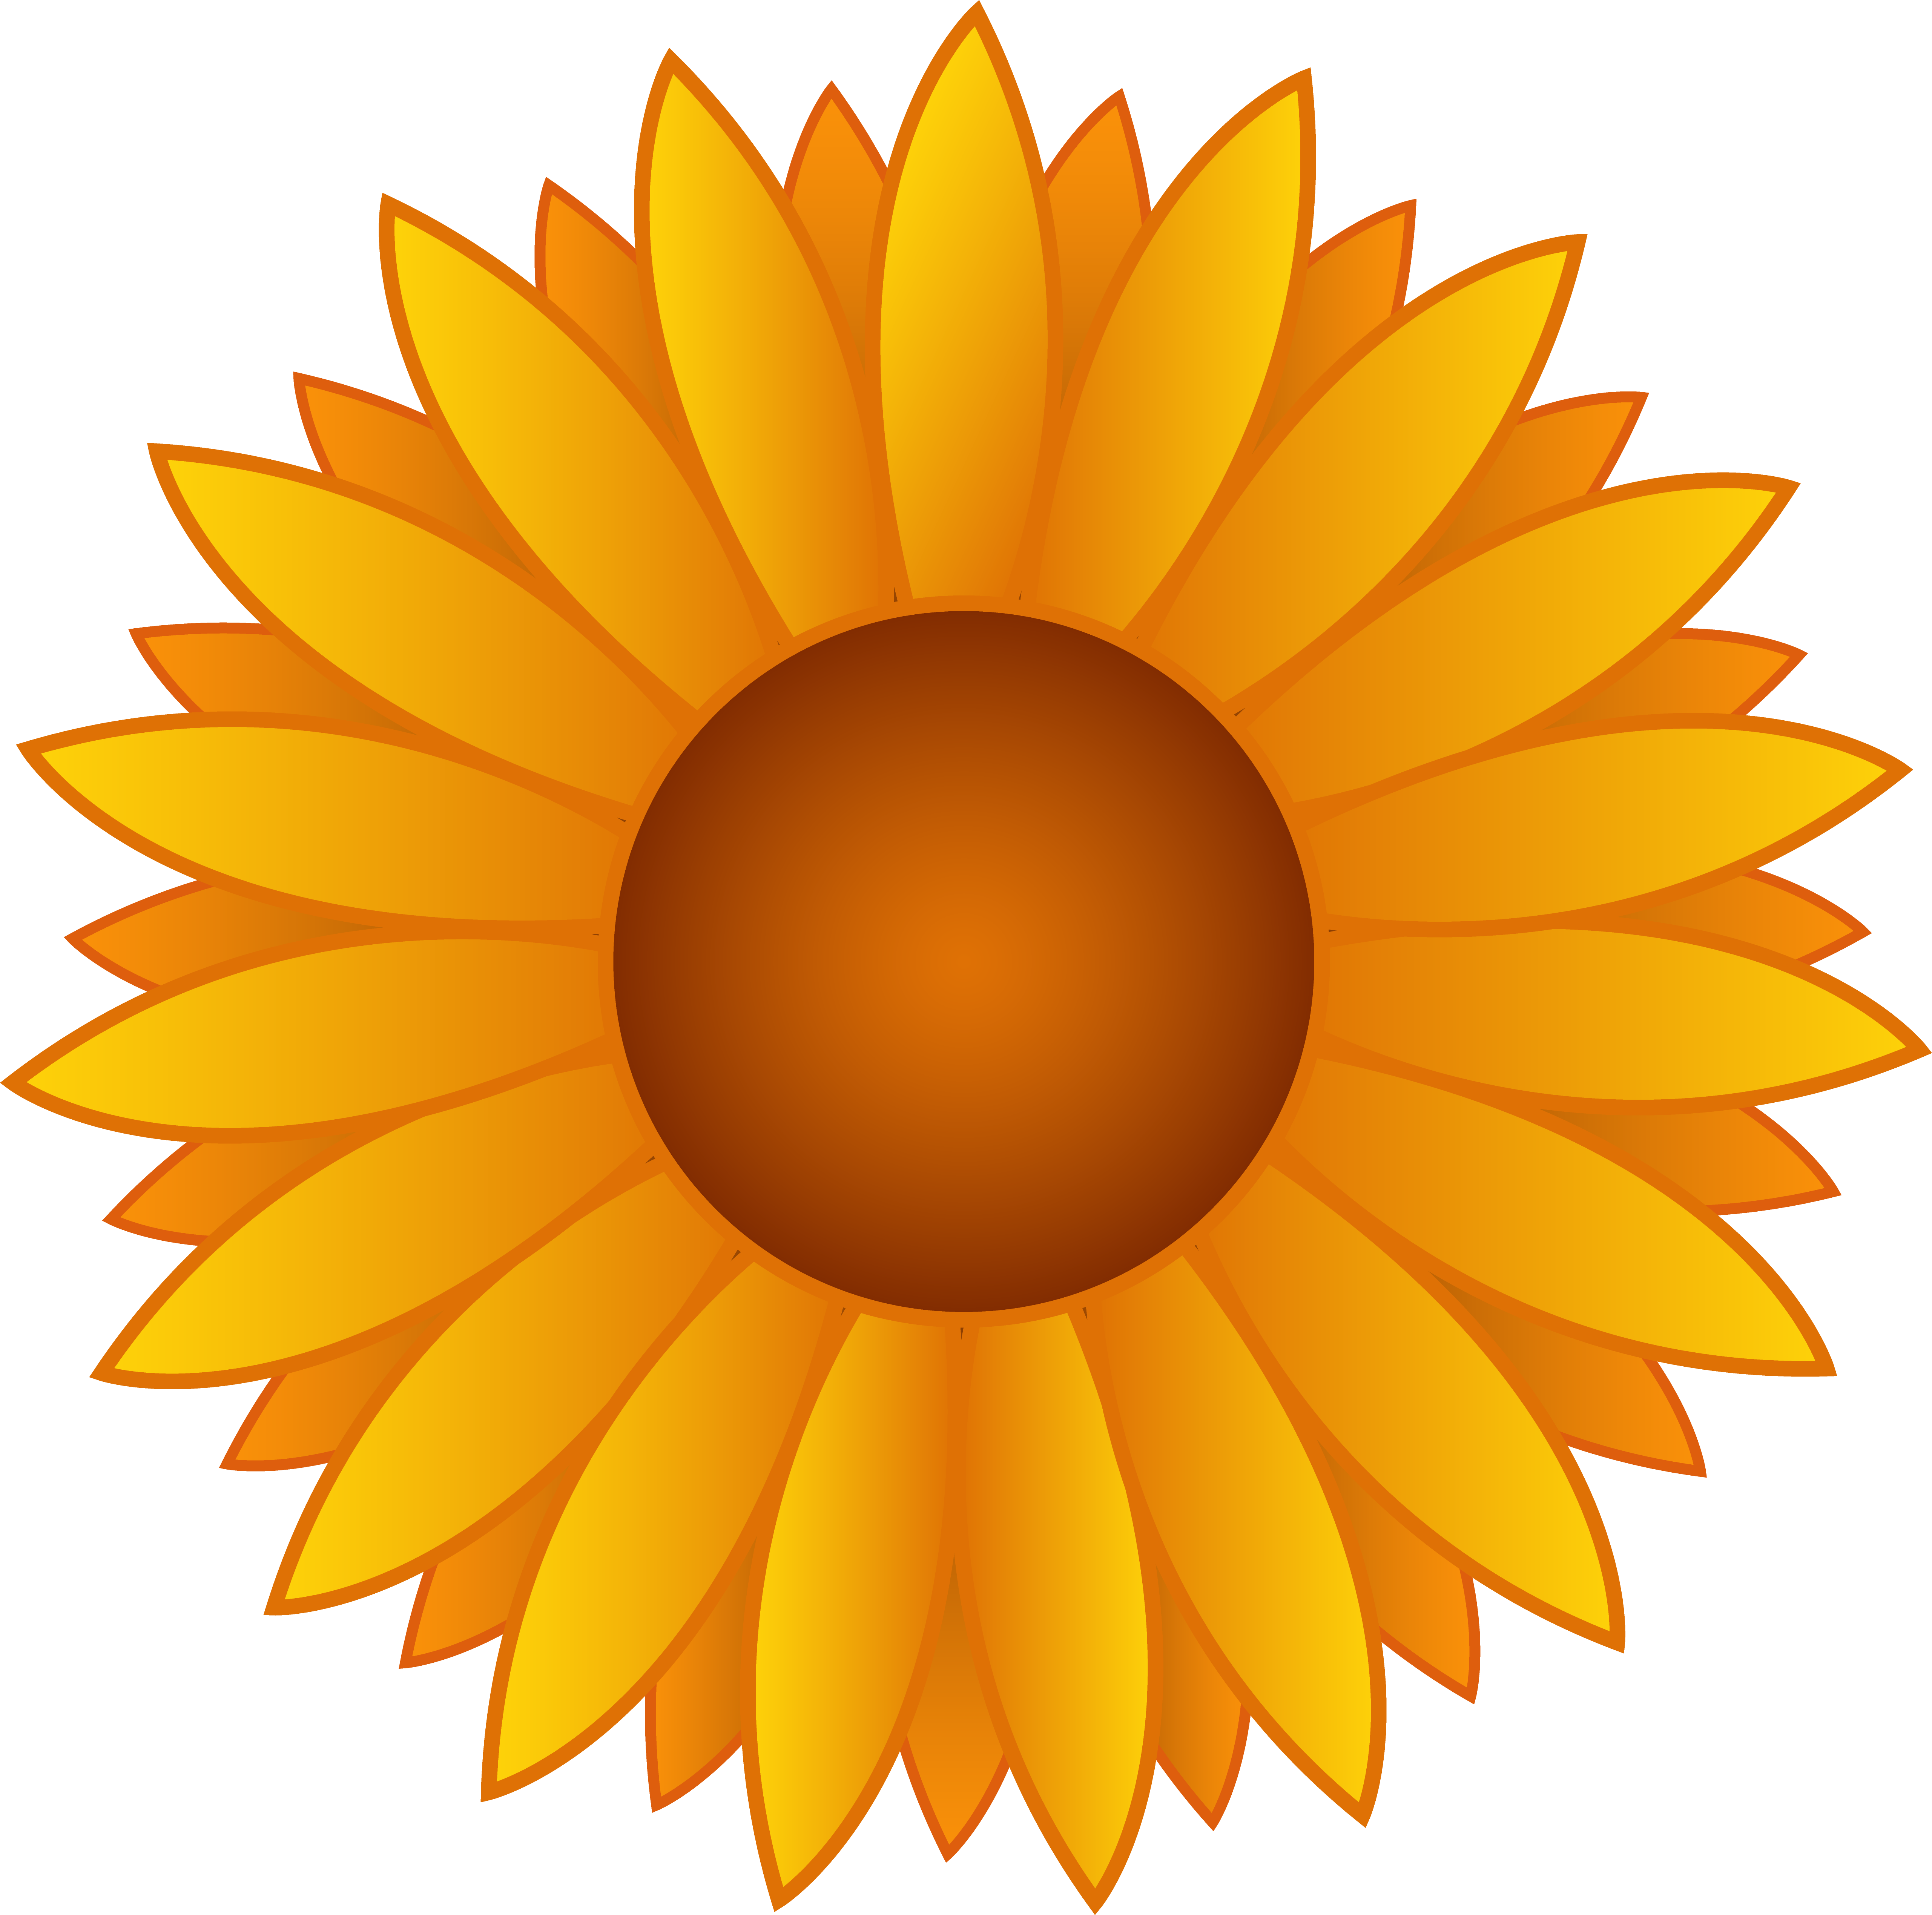 16 Flower Cartoon Vector Clip Art Images